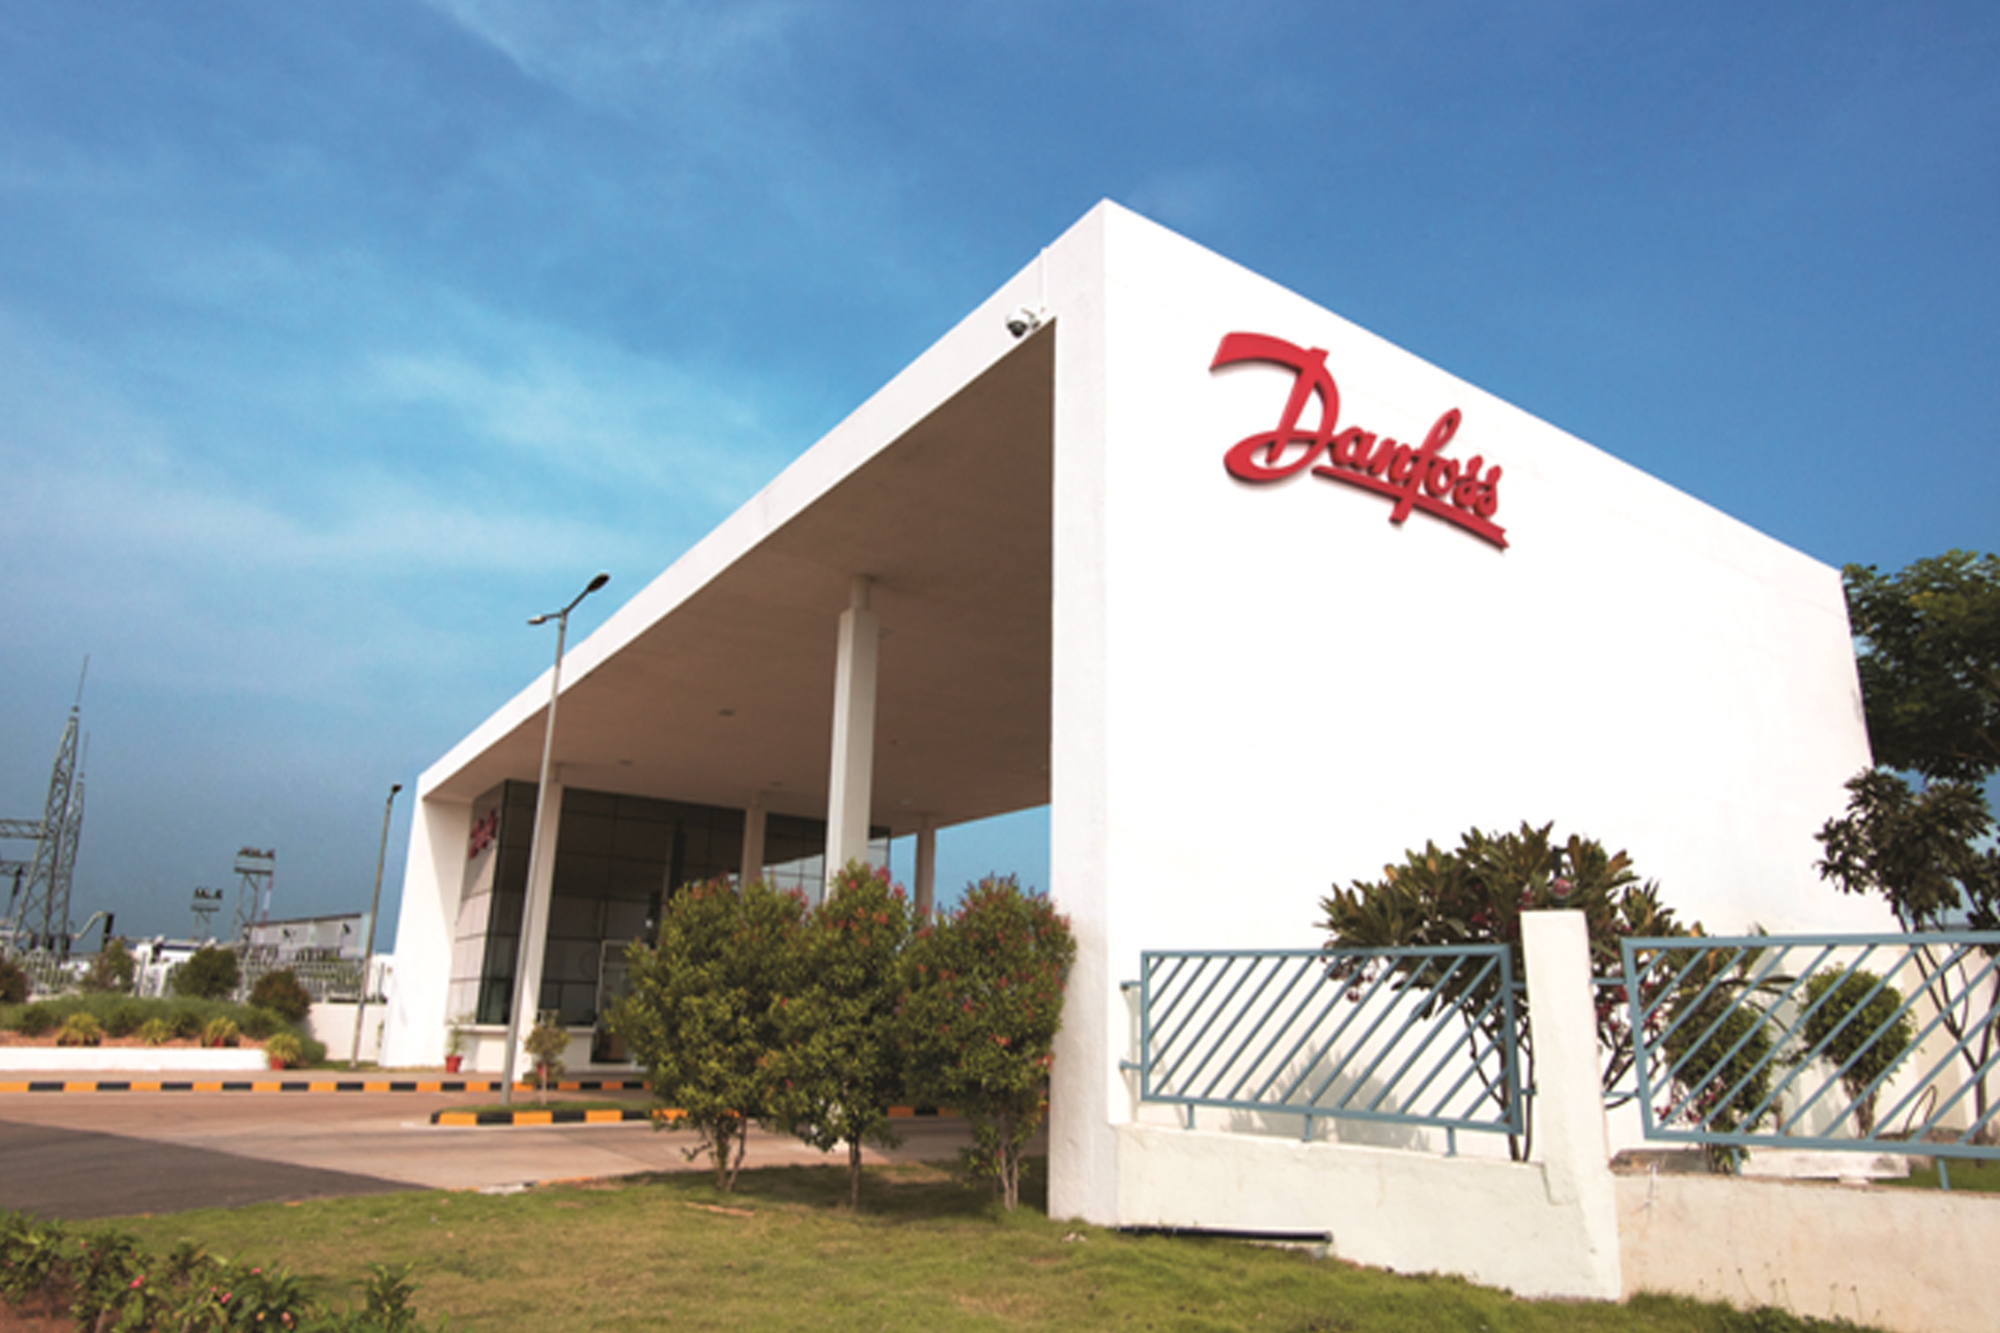 Danfoss completes 20 years of operations in India